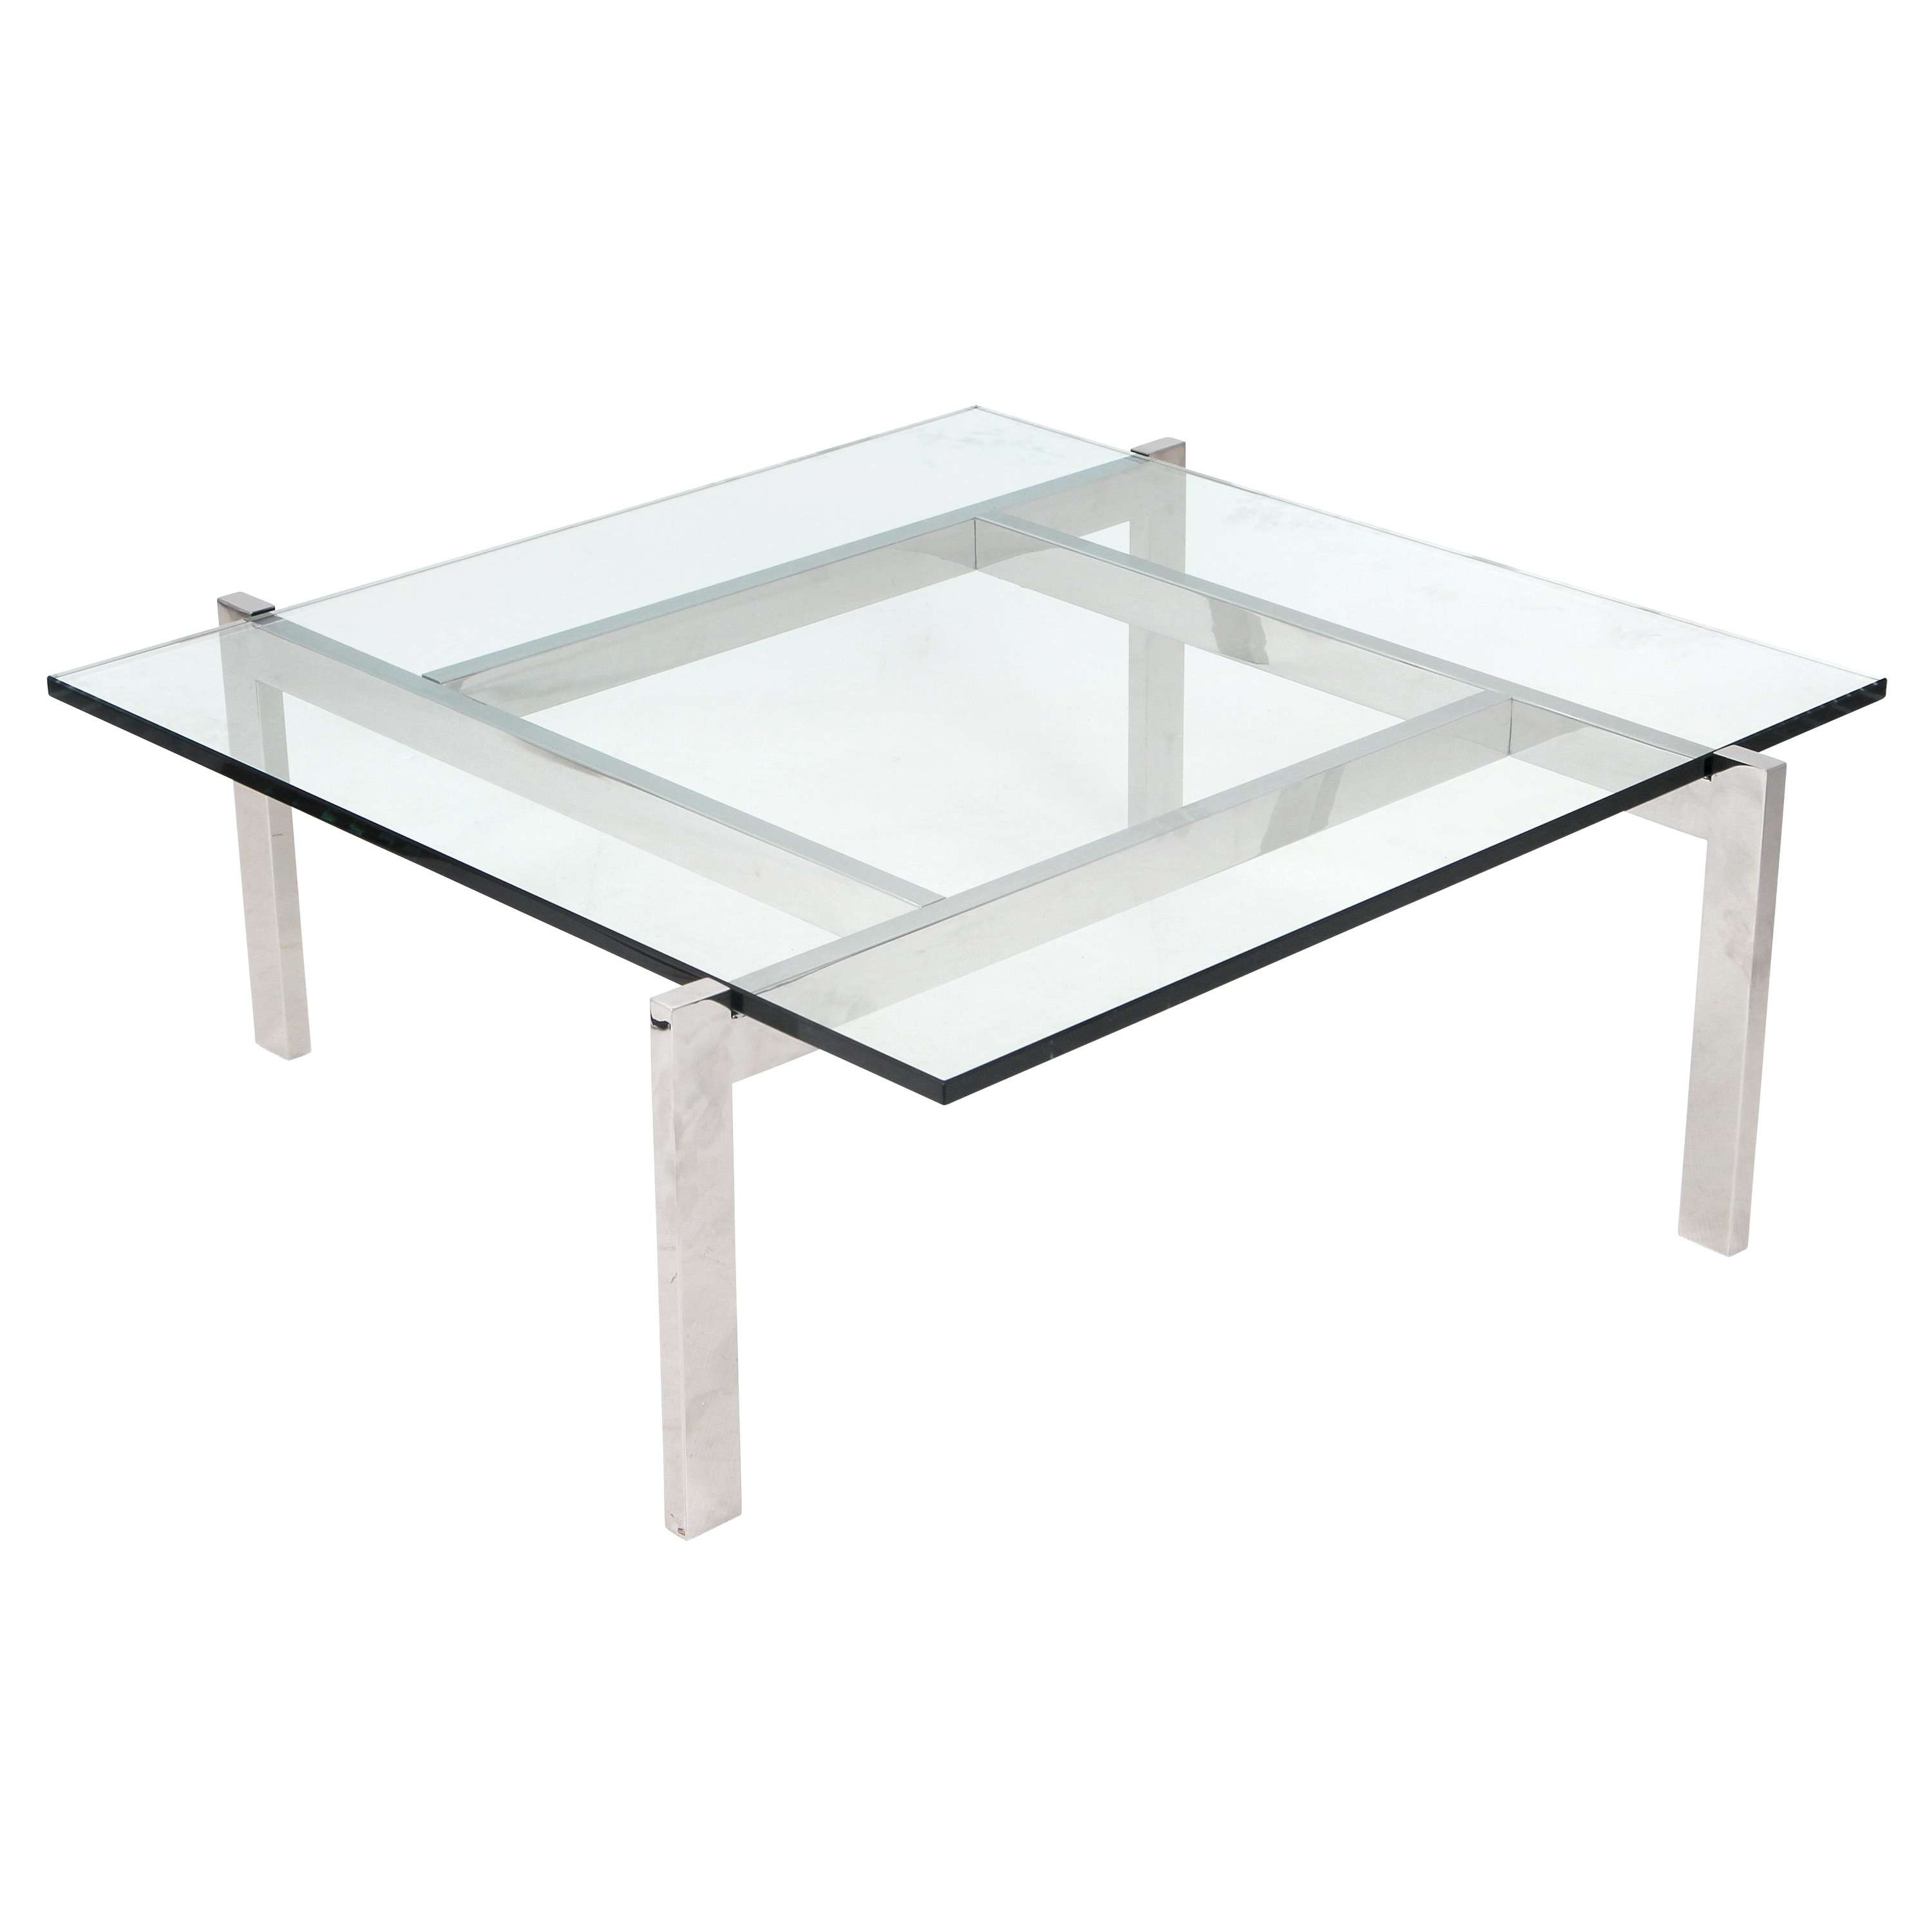 Fashionable Modern Square Glass Coffee Tables Throughout Glass Coffee Table – New Collections About Coffee Table (View 9 of 20)